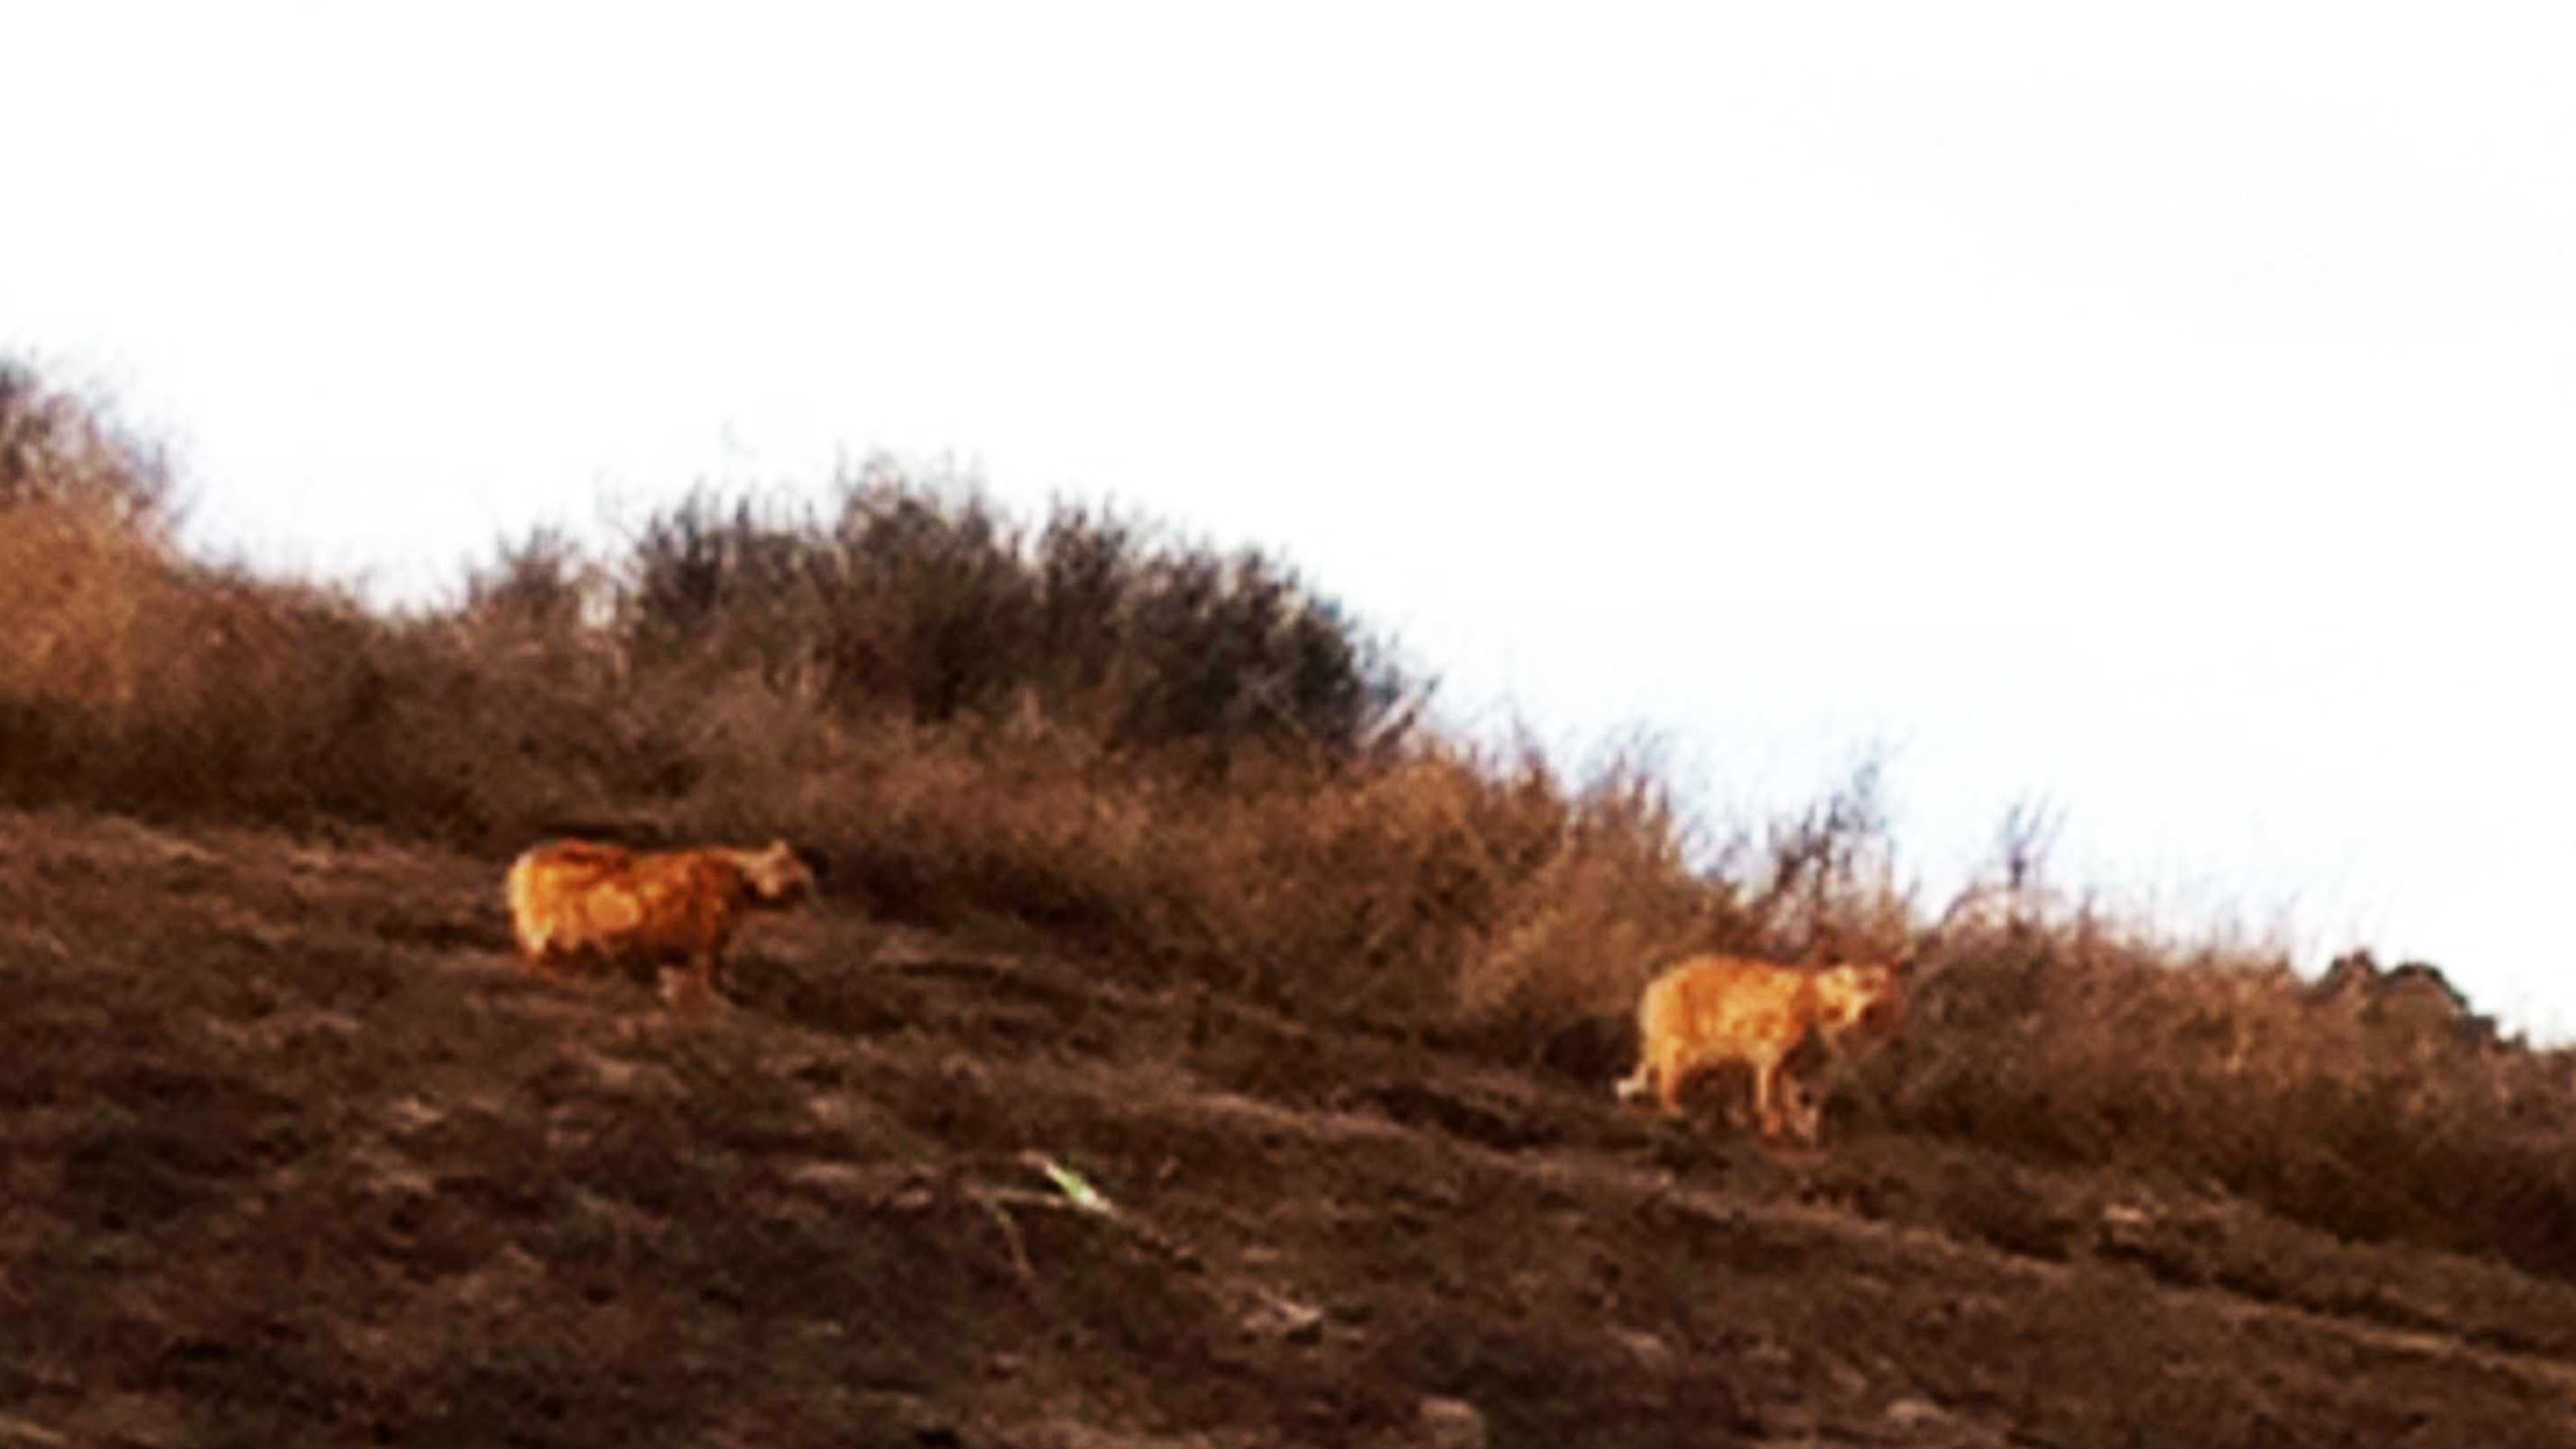 Student Taylor Sollecito took this photograph at 3:30 p.m. Tuesday of two large mountain lions.